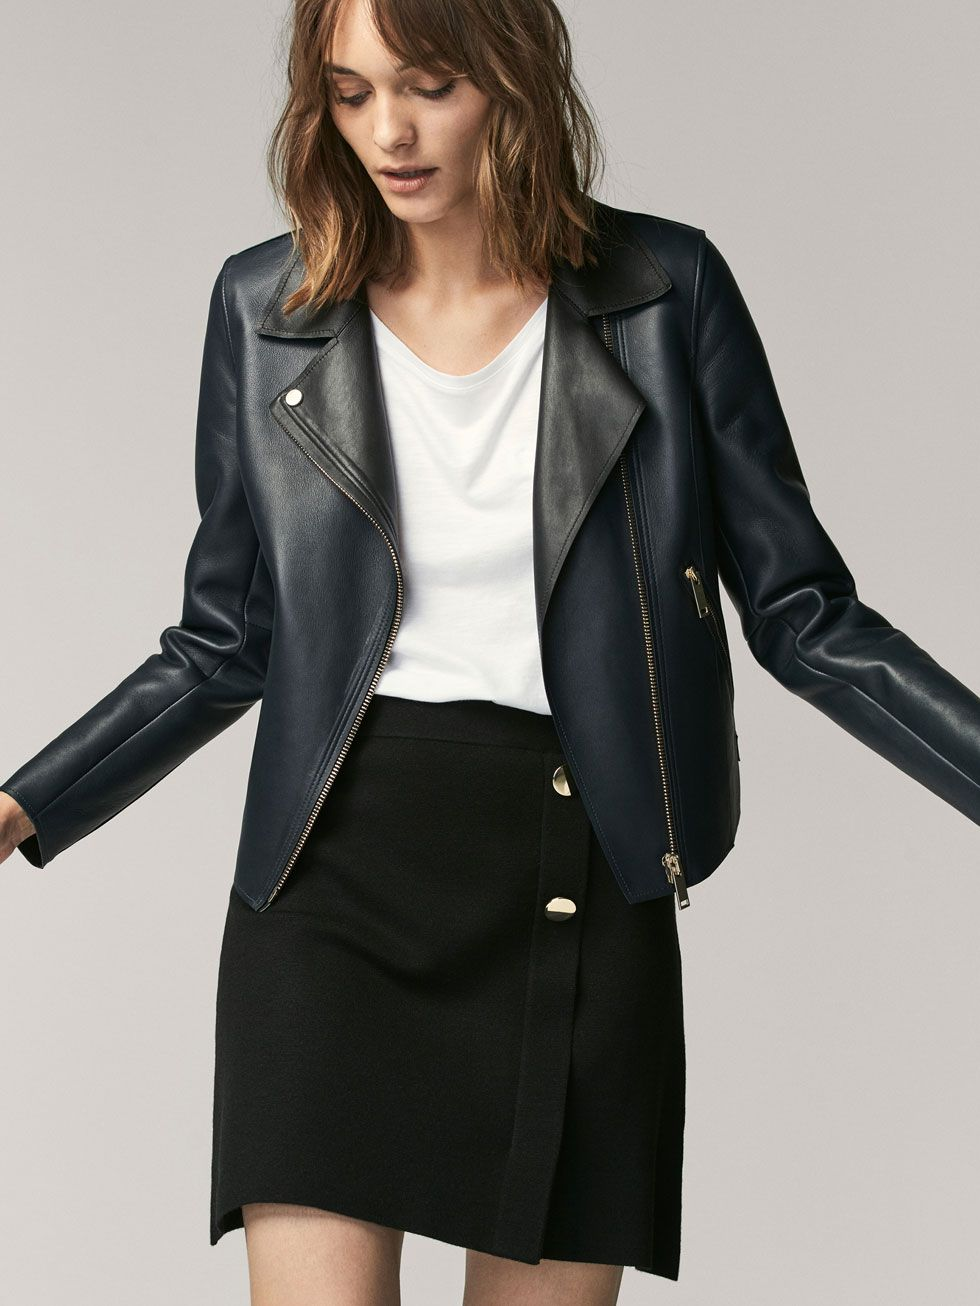 Spring summer 2017 Women´s TWO-TONE NAPPA BIKER JACKET at Massimo Dutti for